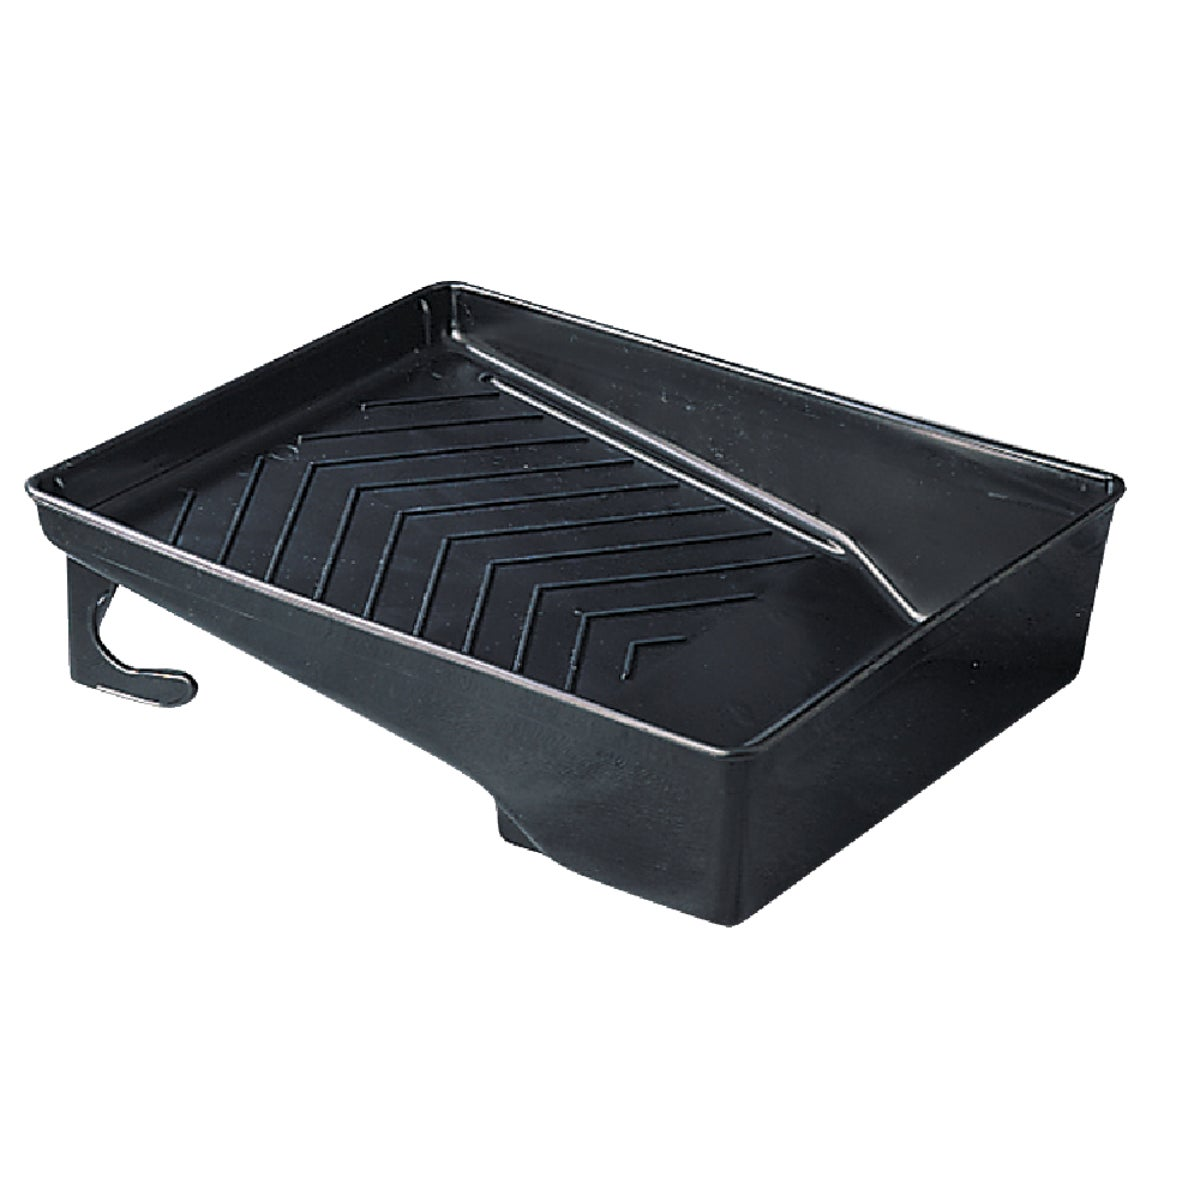 PLASTIC DEEP WELL TRAY - 45 by Leaktite Corporation